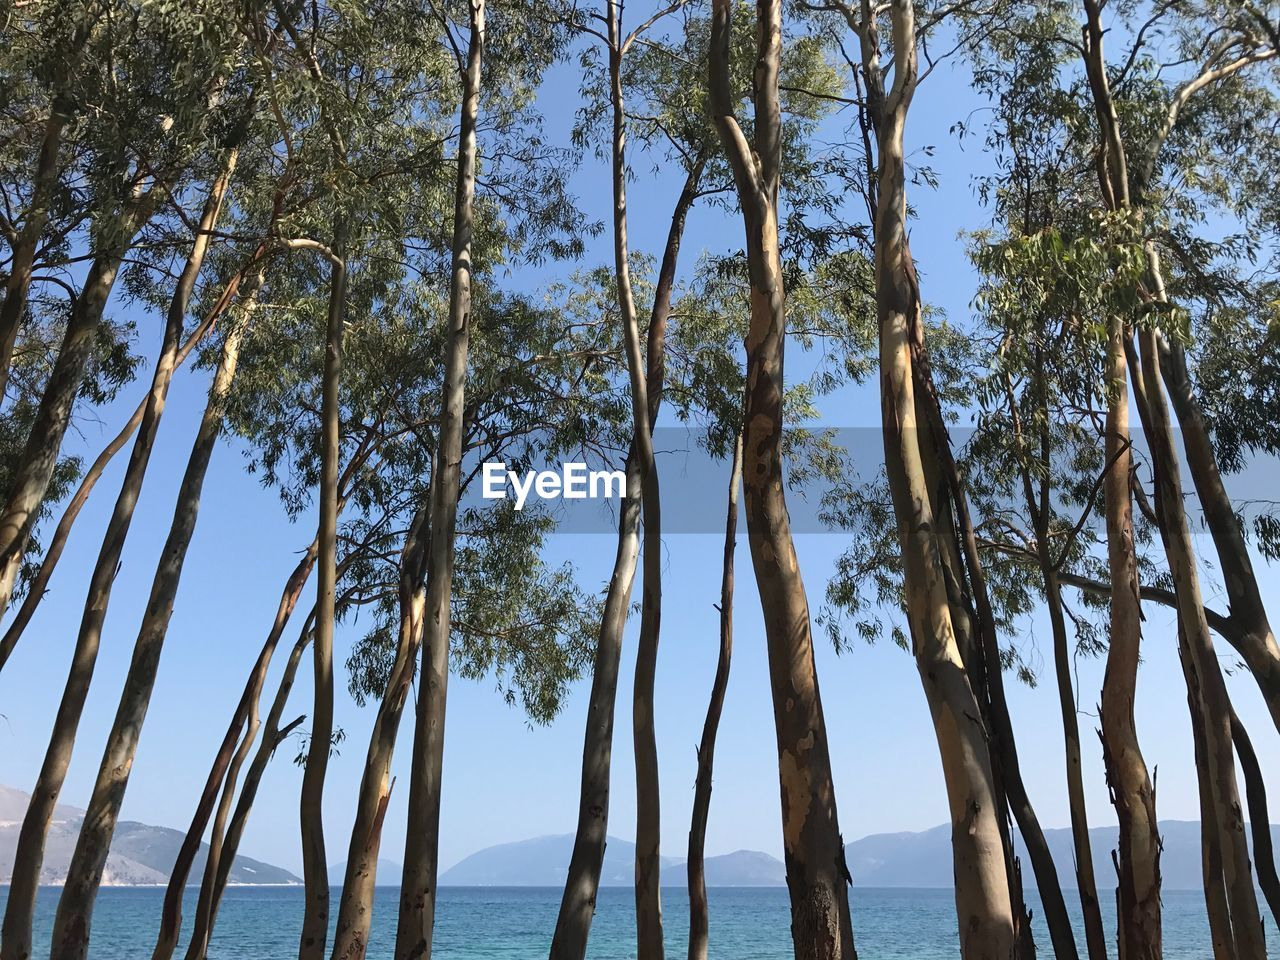 tree, nature, scenics, beauty in nature, tranquility, tranquil scene, day, sea, outdoors, no people, branch, tree trunk, low angle view, growth, water, sky, blue, horizon over water